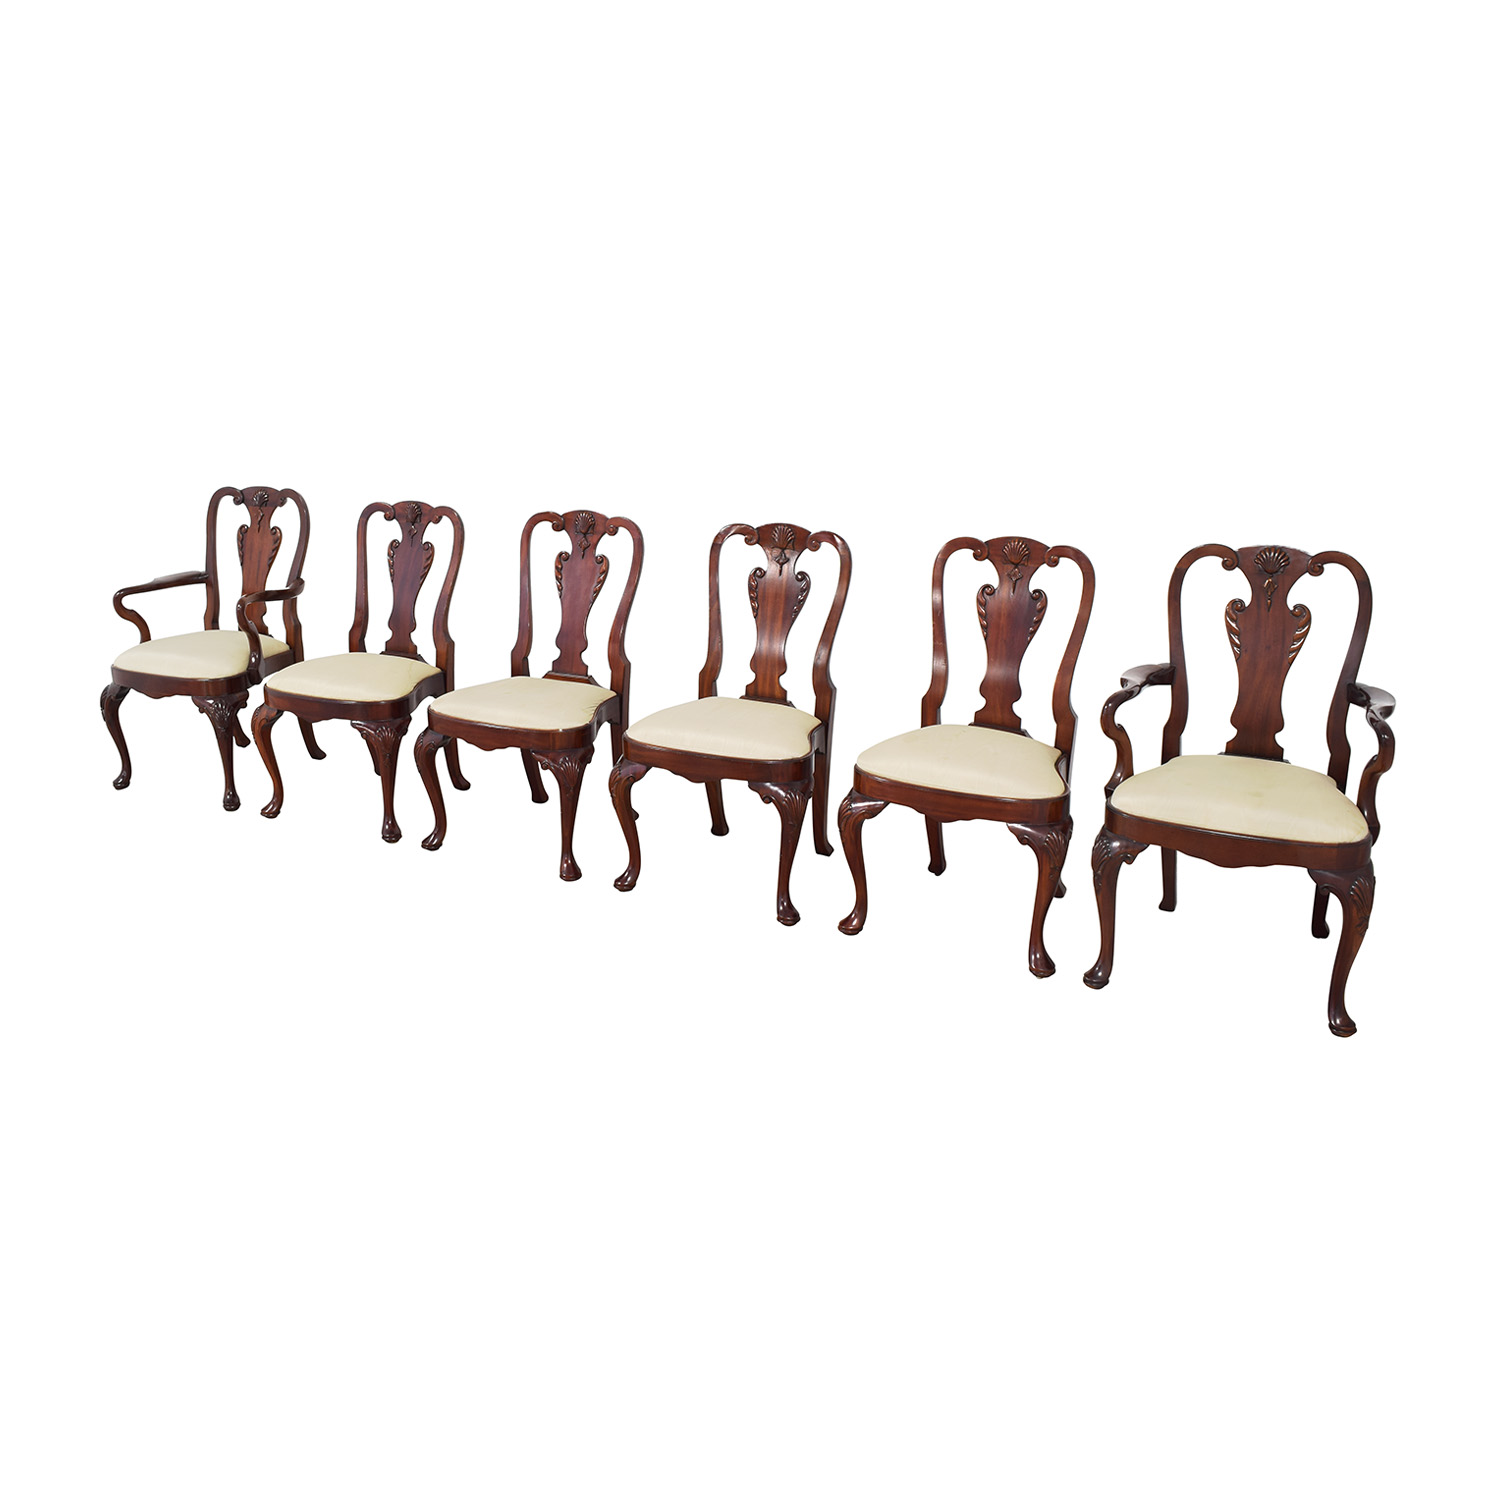 shop Maitland-Smith Maitland-Smith Dining Chairs online